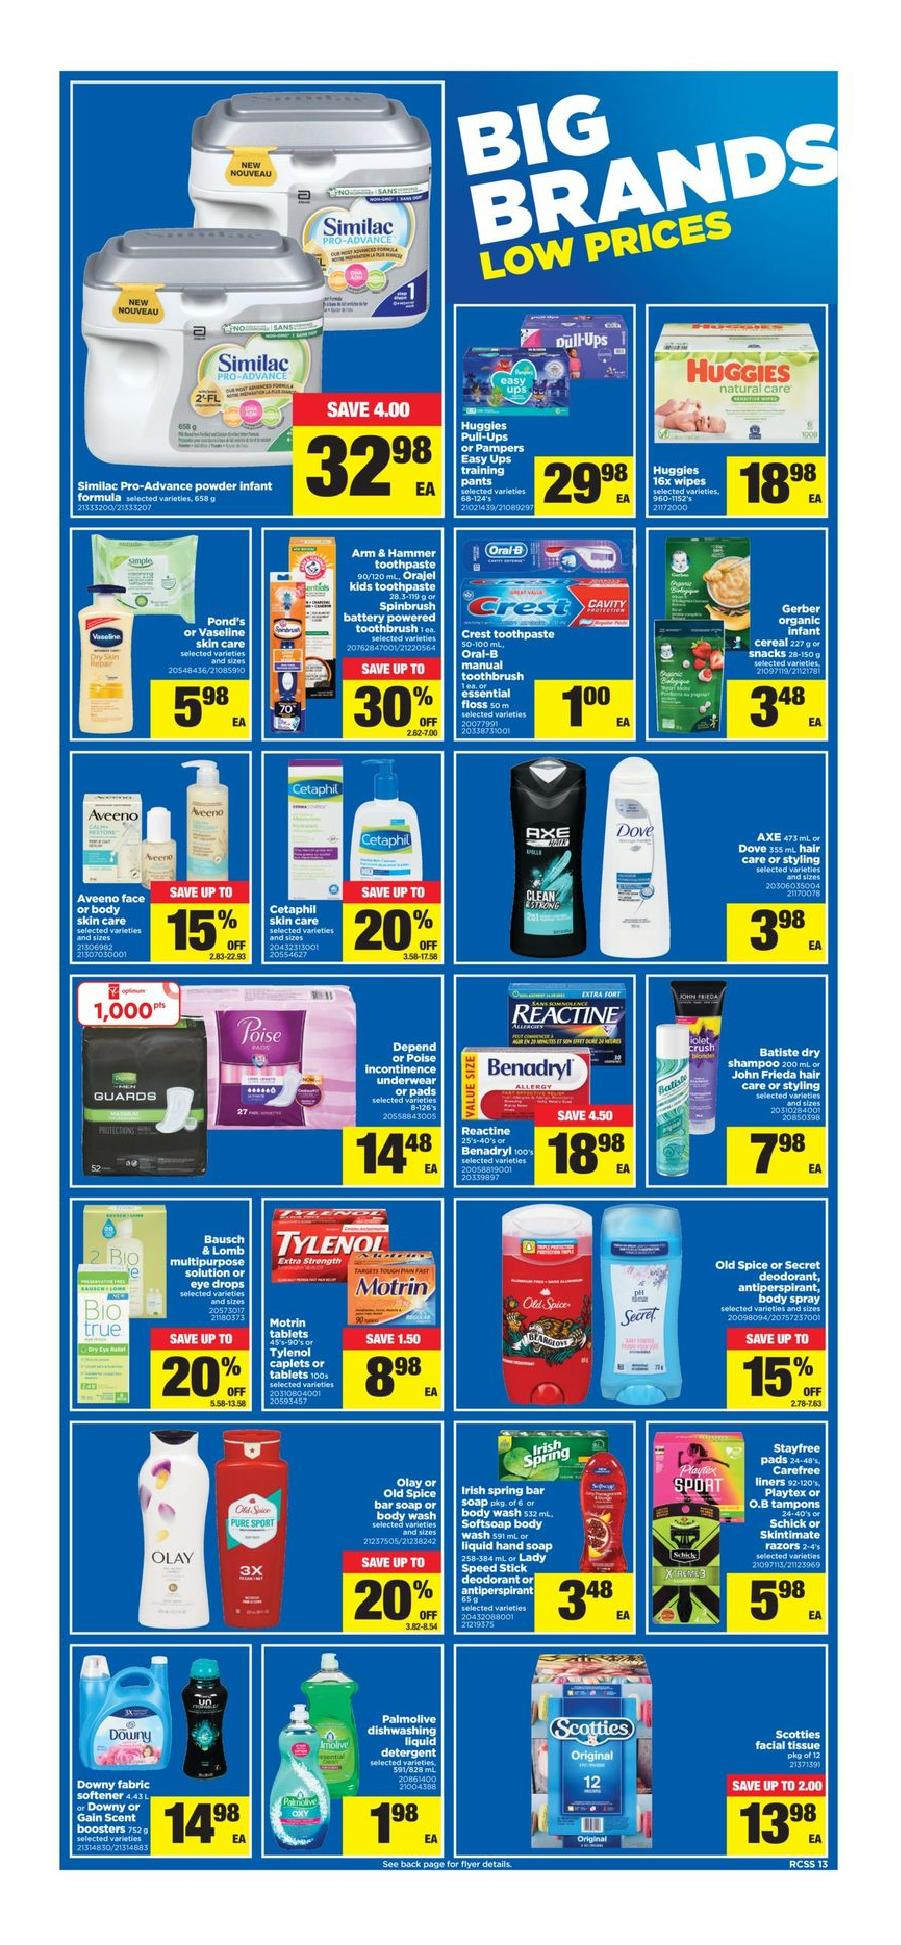 17 Superstore ON Flyer May 20 May 26 2021